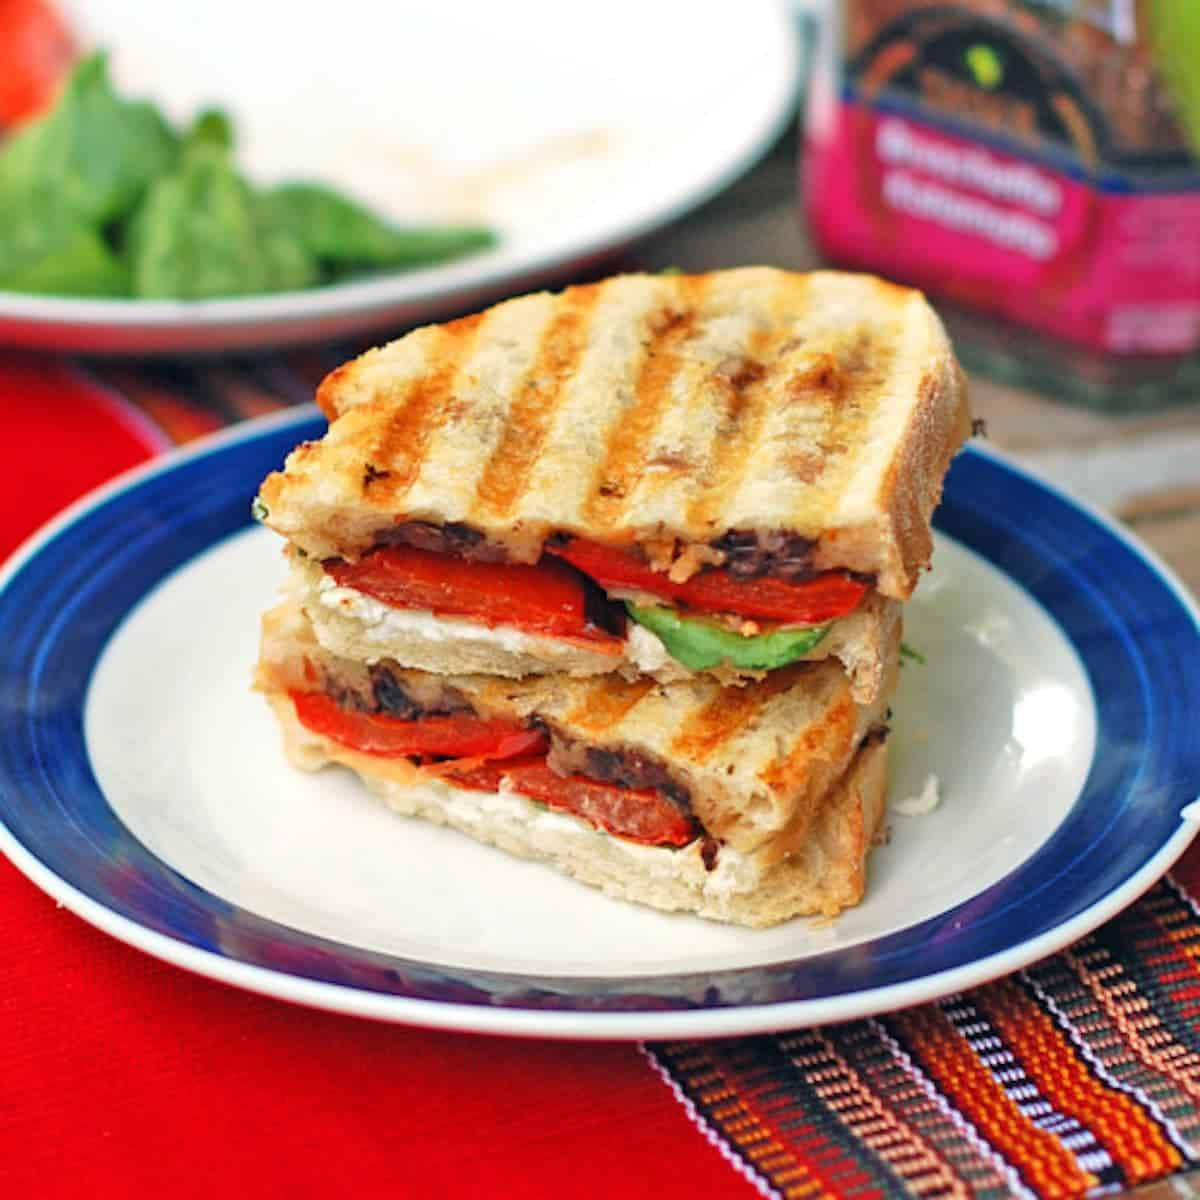 Red pepper and goat cheese panini with a layer of olive tapenade topped with roasted red pepper and soft, creamy goat cheese.